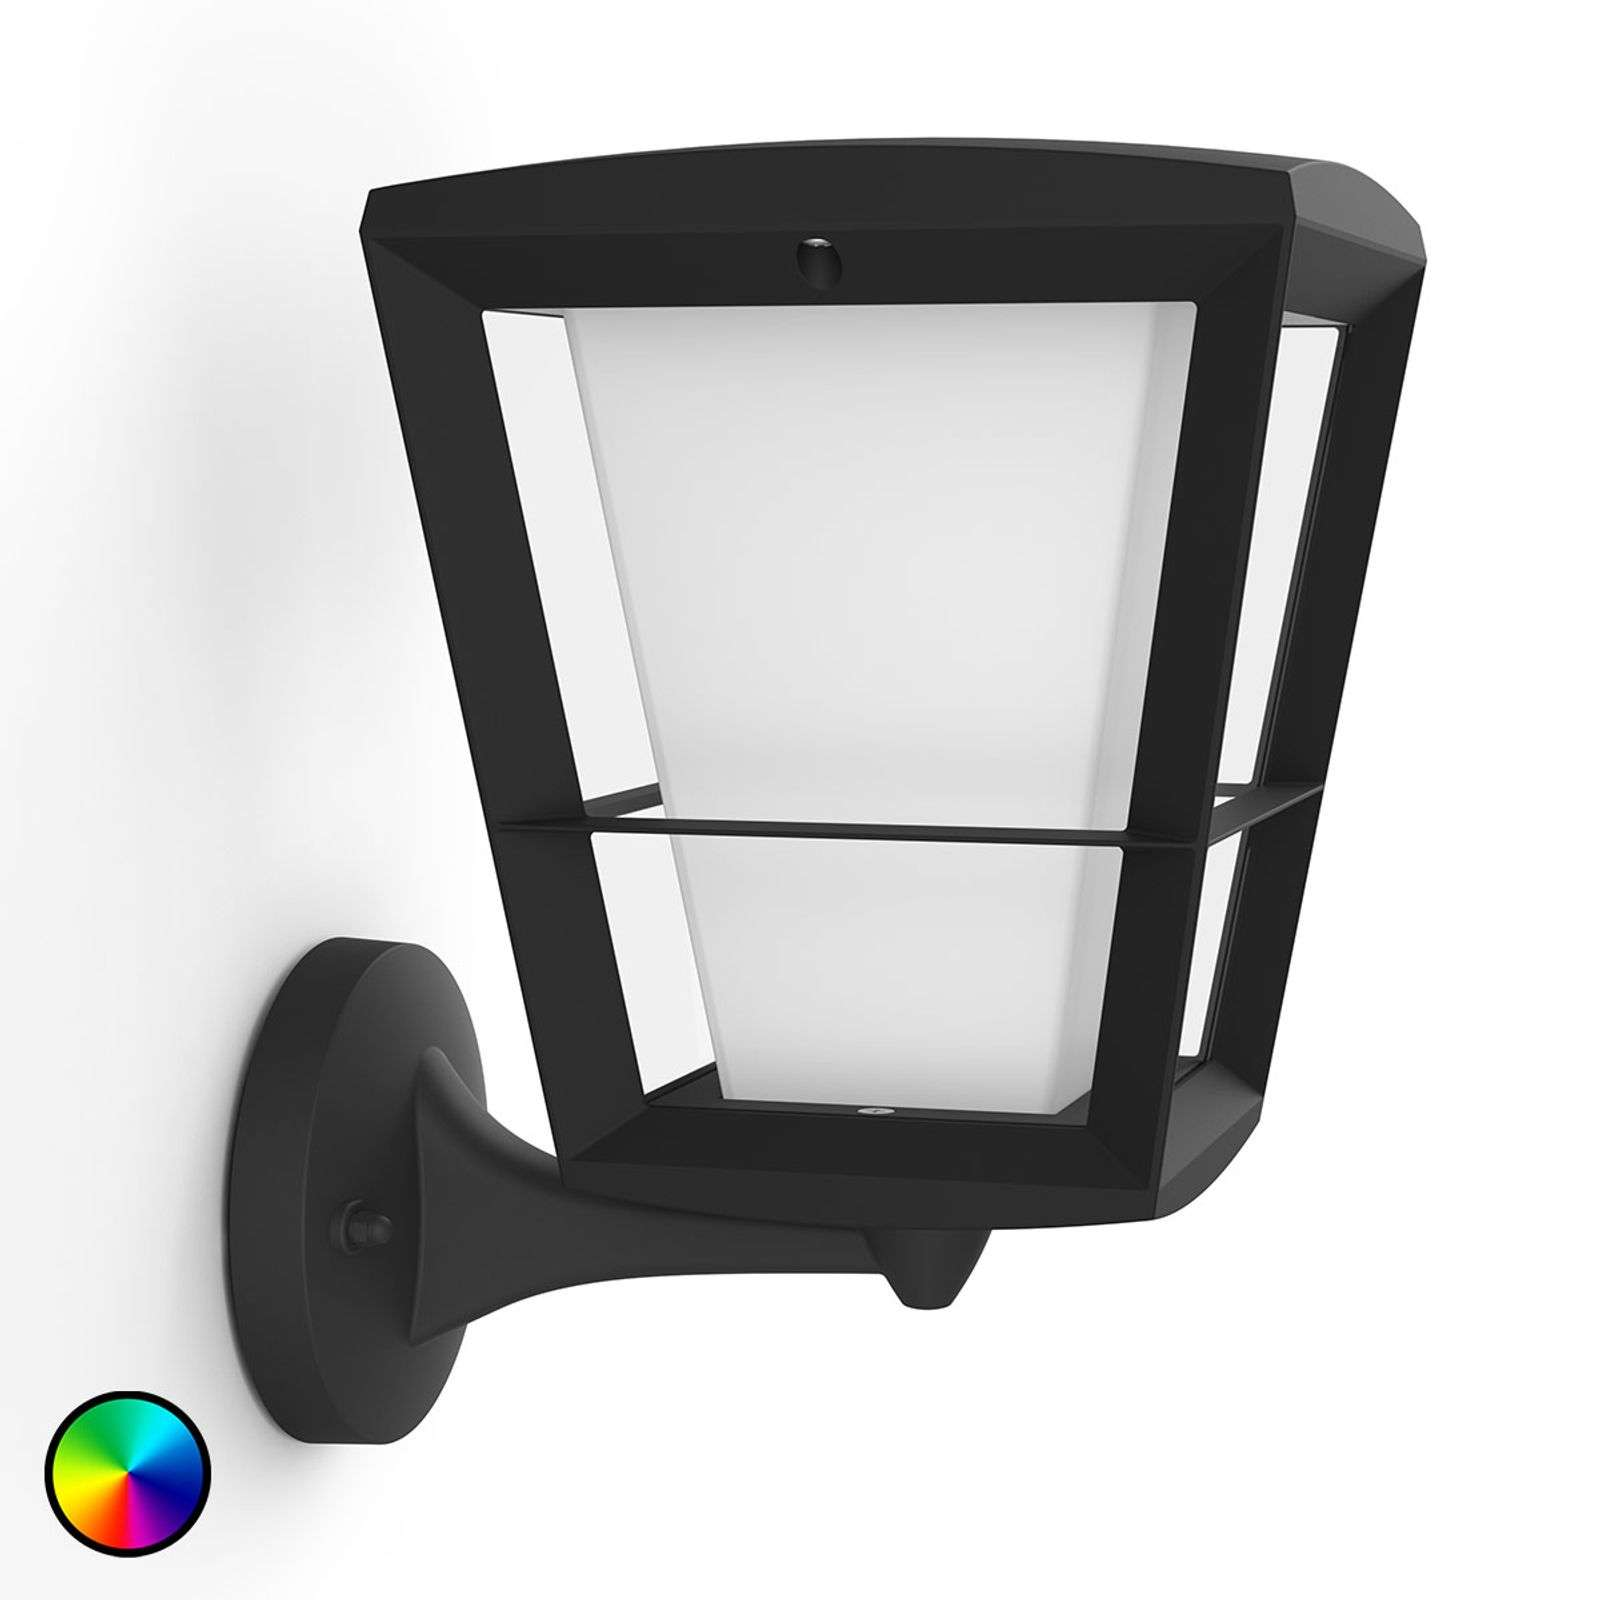 Philips Hue White+Color Econic applique in alto